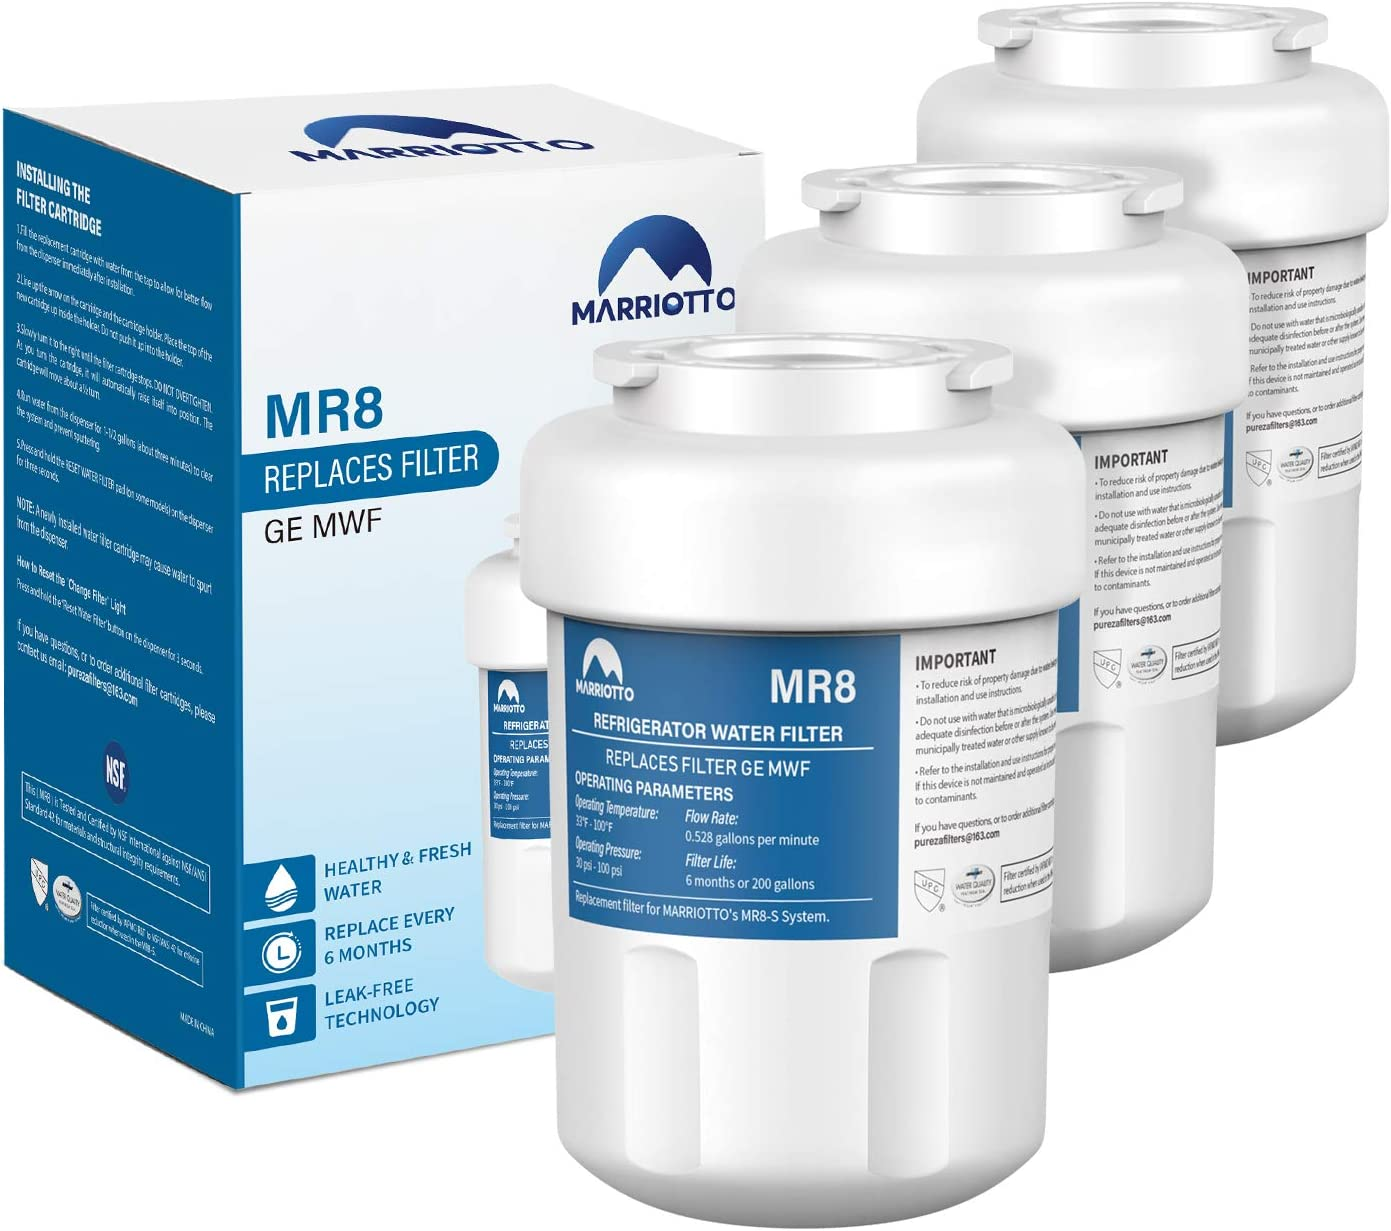 MARRIOTTO Water Filters for GE Refrigerators